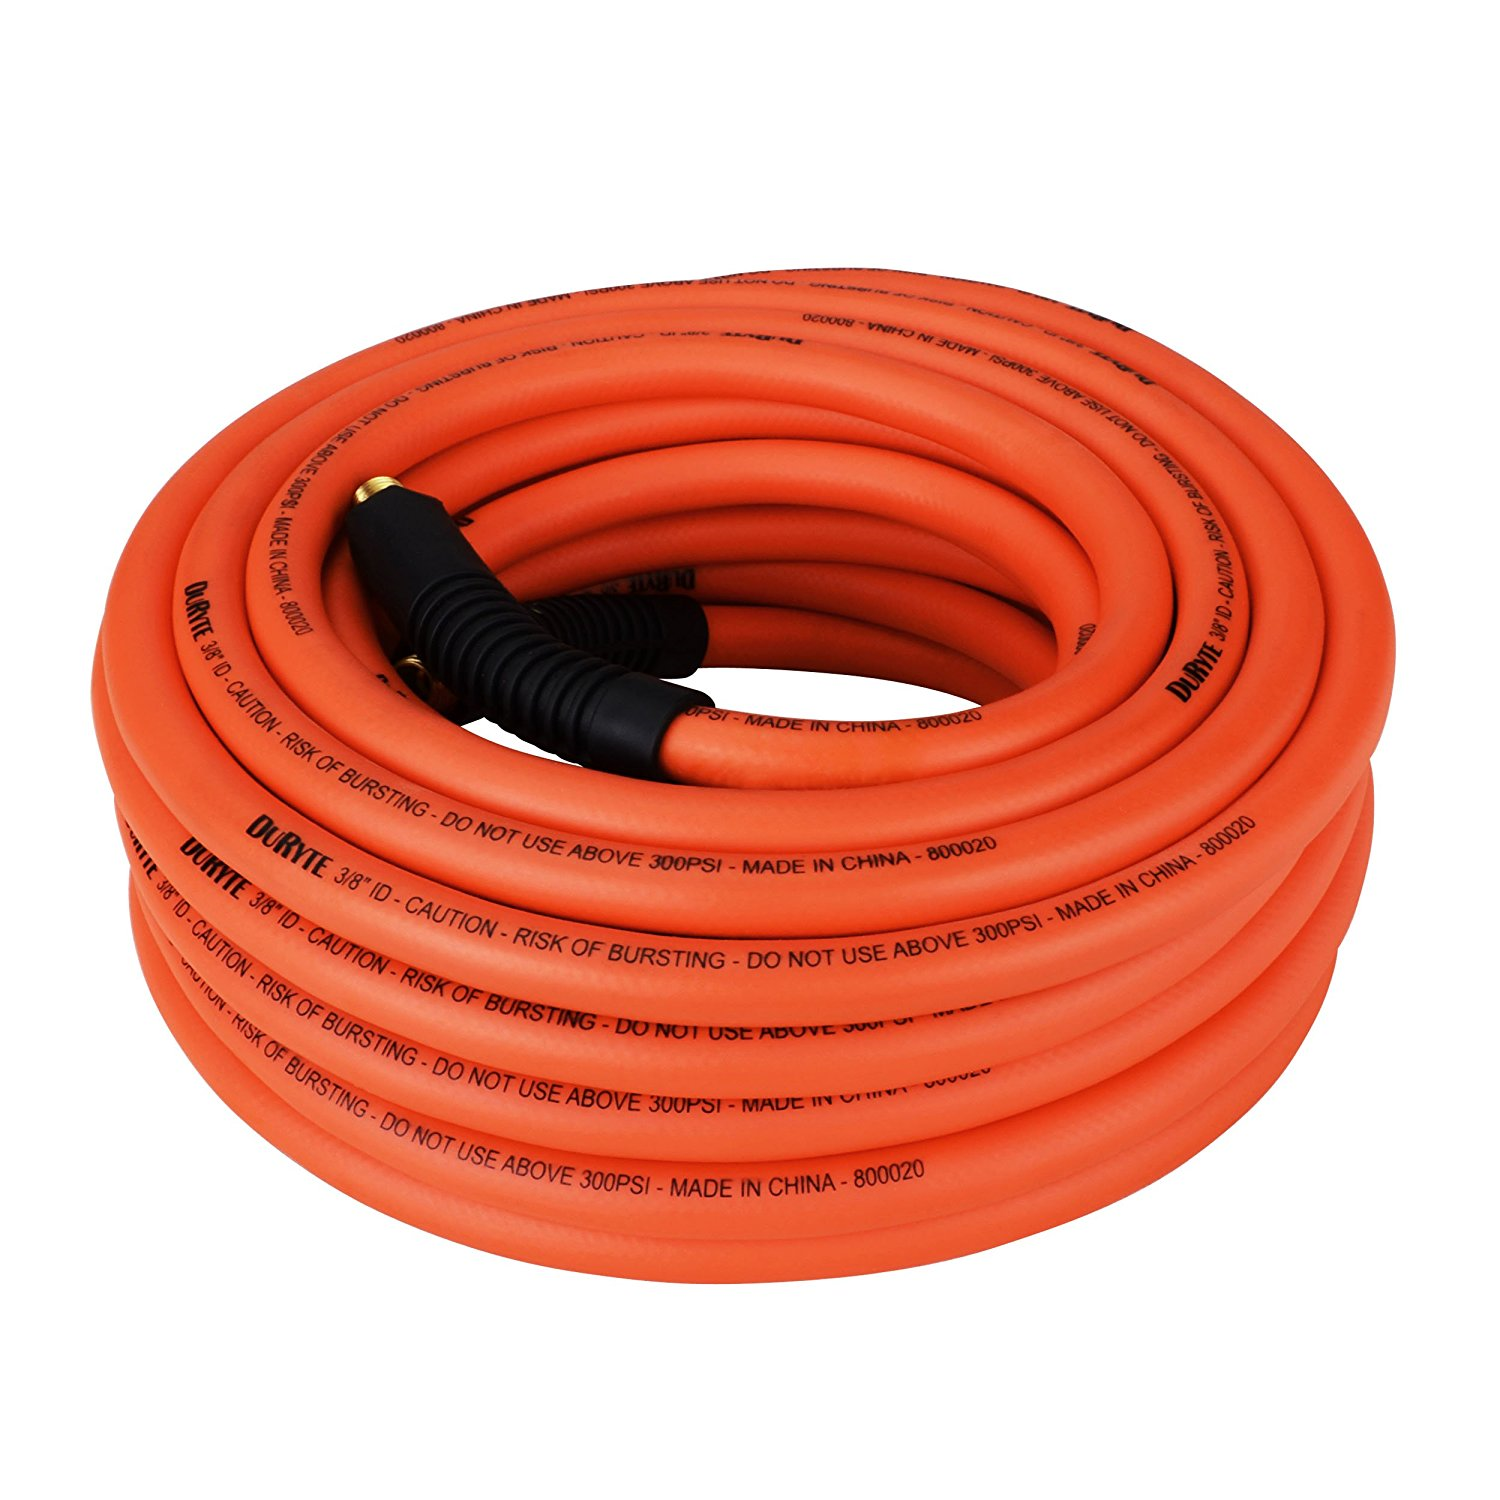 DuRyte Pro 300 PSI Hybrid Air Hose - MNPT Brass Ends, PVC/Rubber Construction, 3/8-Inch by 50-Feet